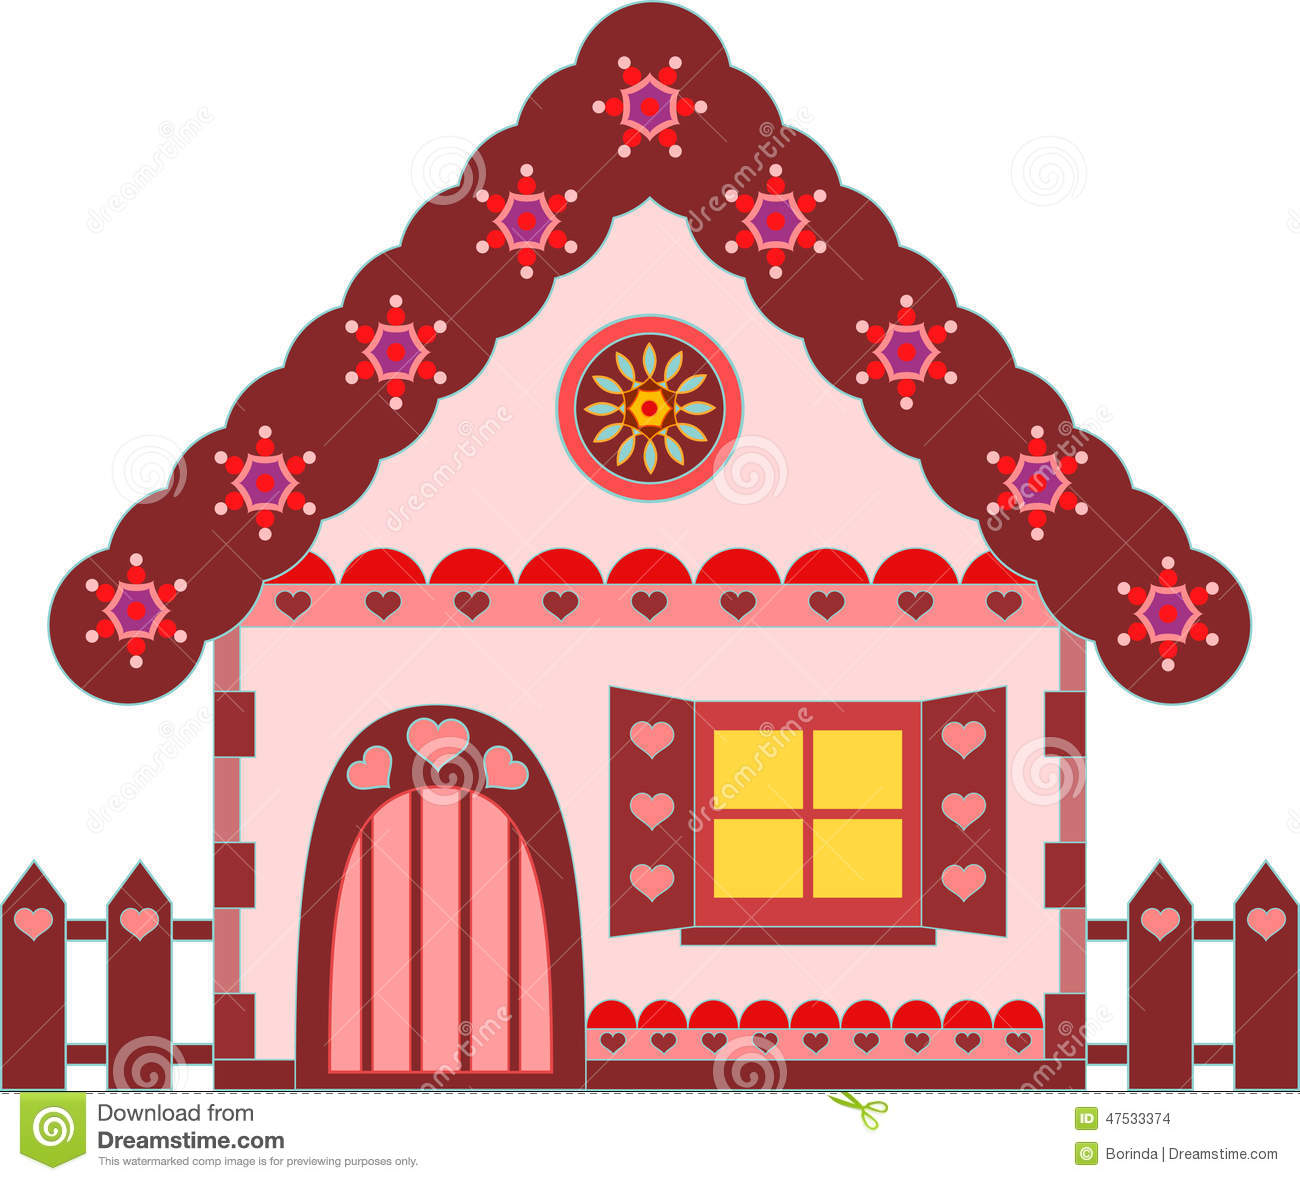 pink and brown gingerbread house illustration stock illustration